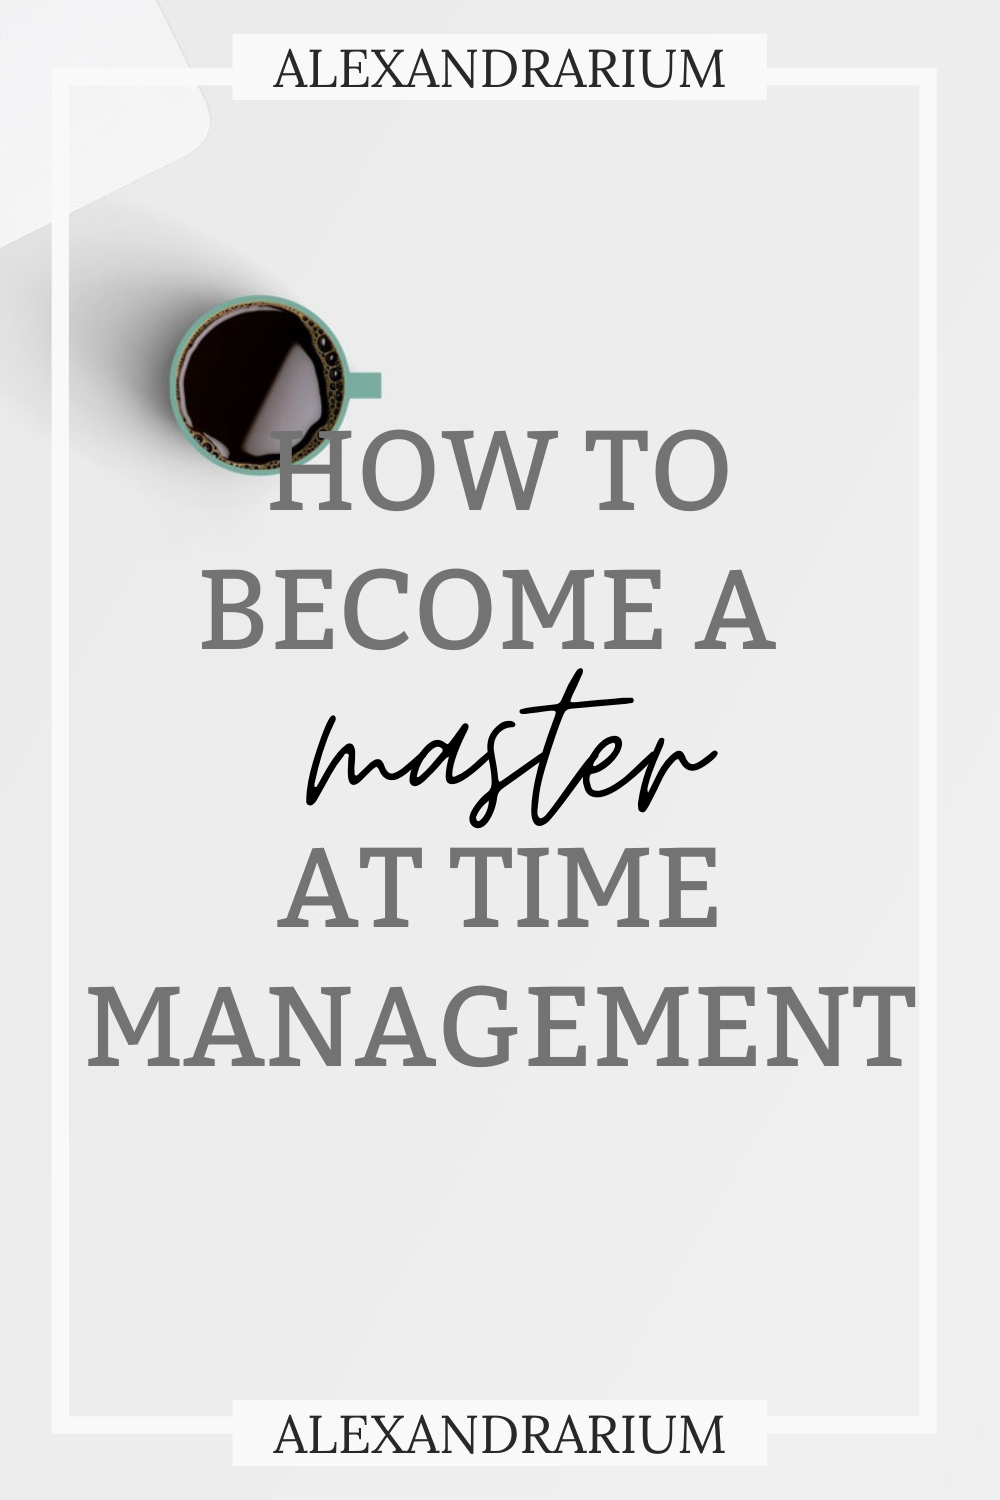 How To Become A Master At Time Management